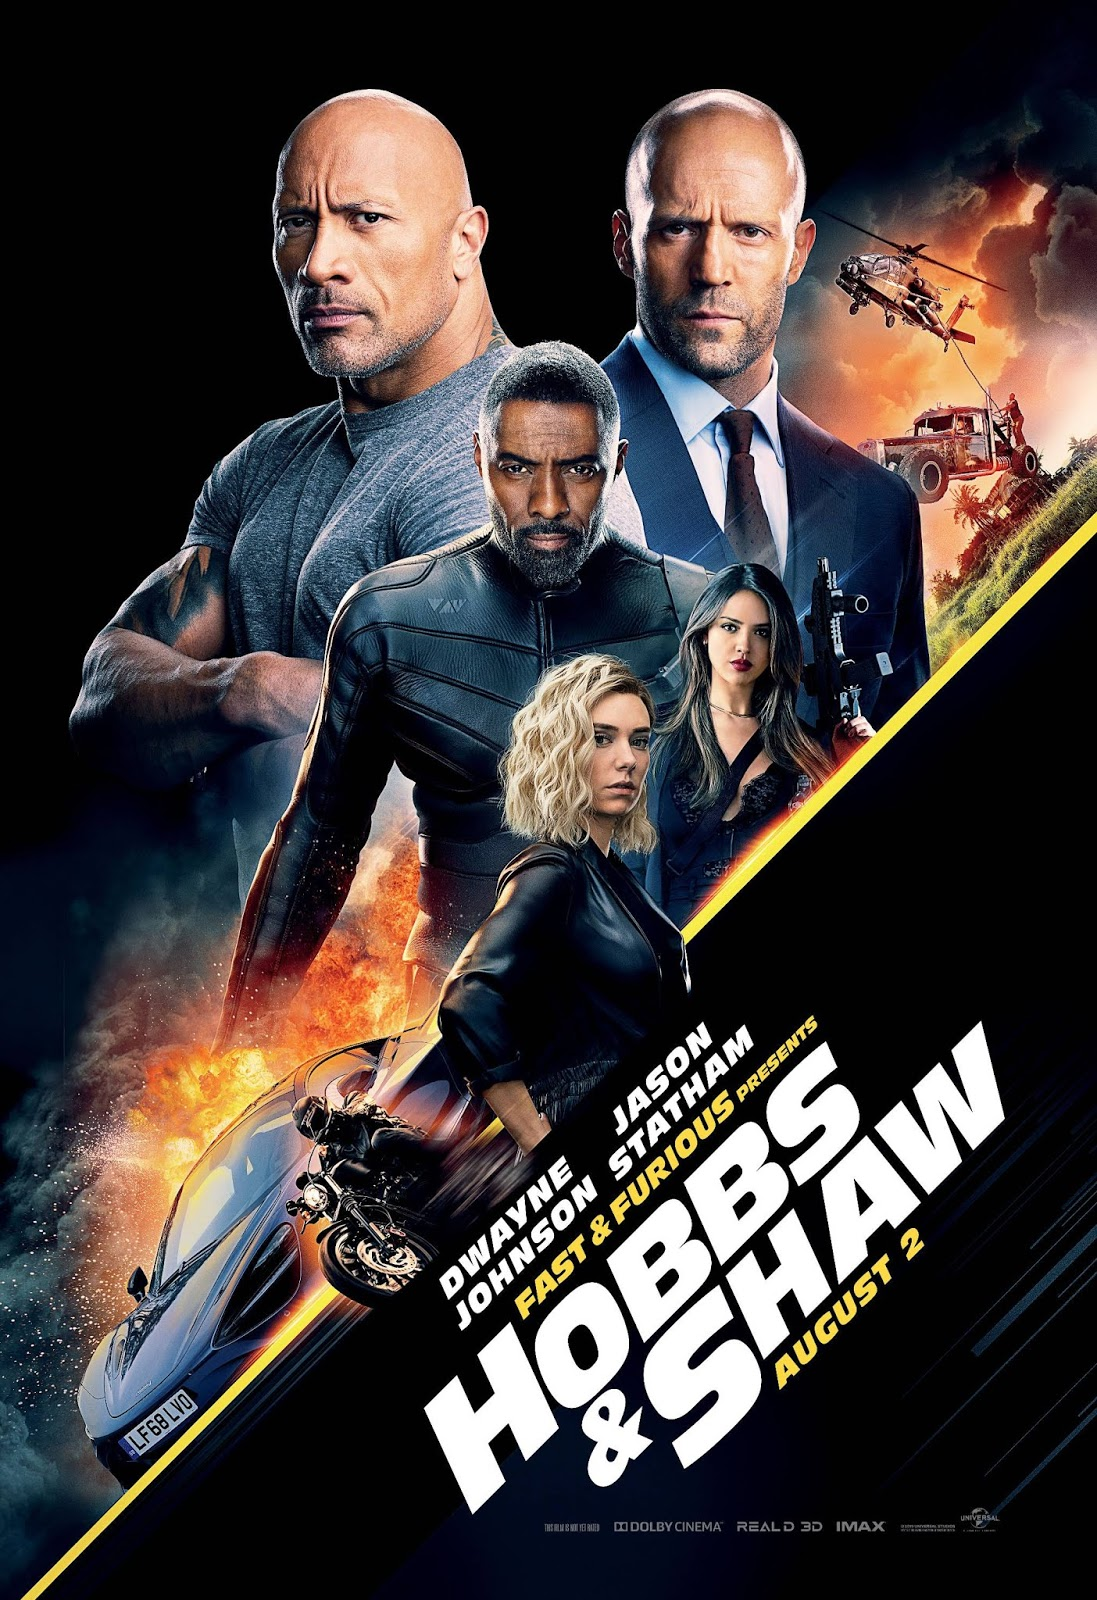 Fast & Furious Presents: Hobbs & Shaw (2019) Hindi BluRay 480p 720p 1080p Dual Audio [हिंदी DD5.1 + English]